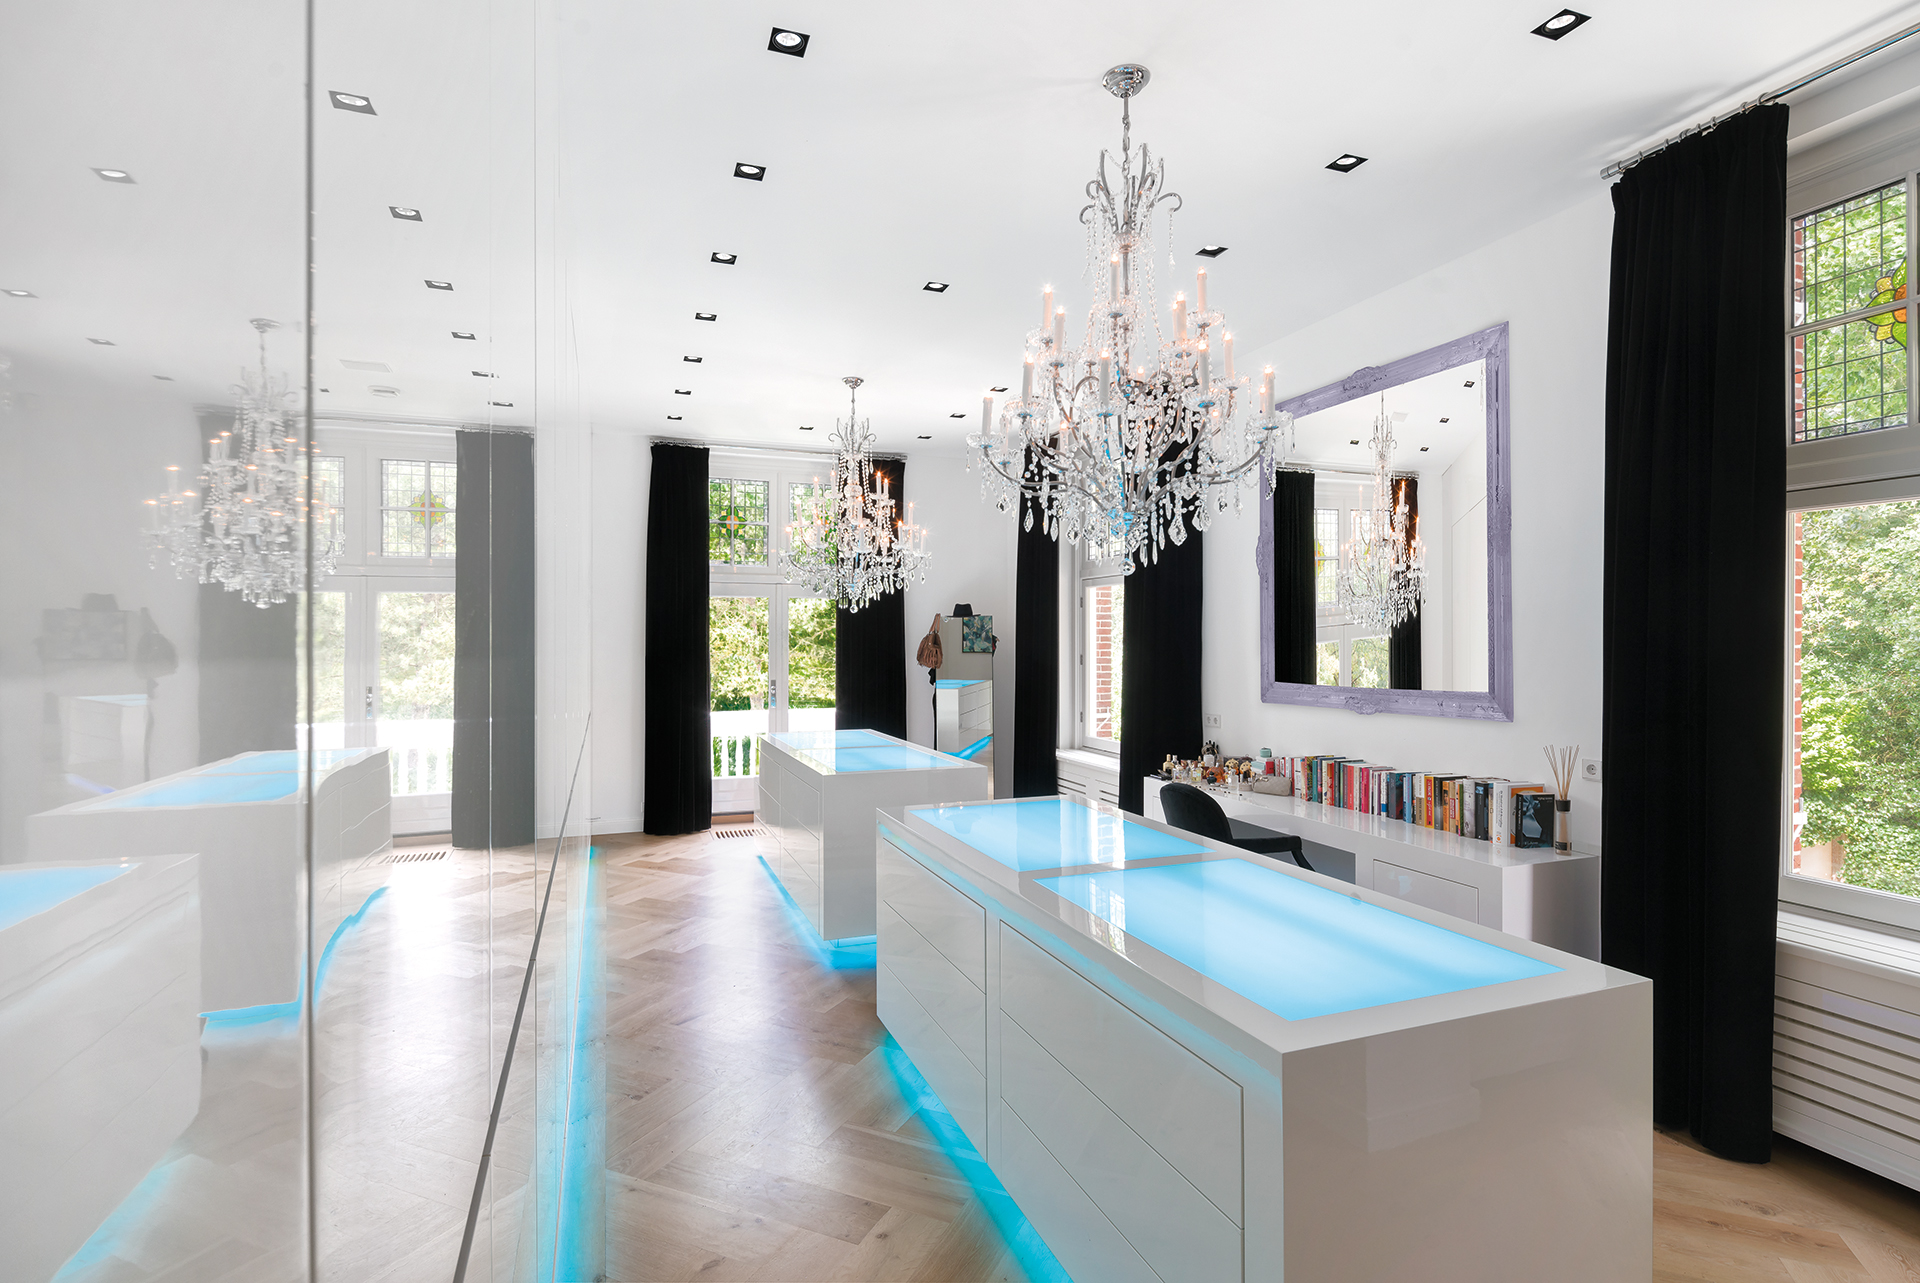 Modern wardrobe with overhead chandaliers and LED edgelighting on the cabinets